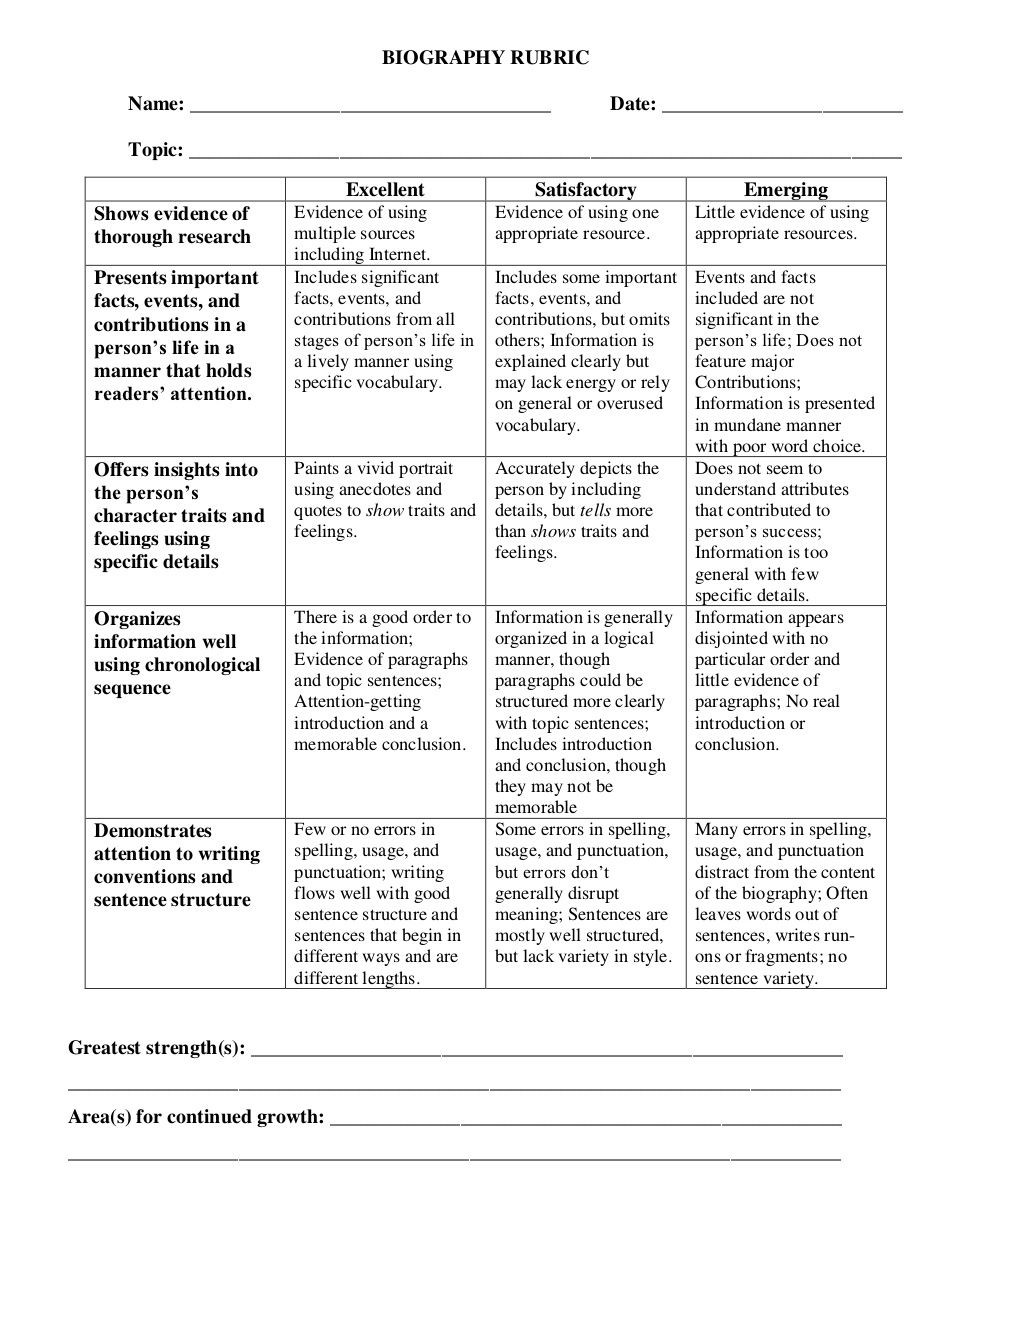 022 Sample Biography Essay Unforgettable About Myself Elementary Self Large